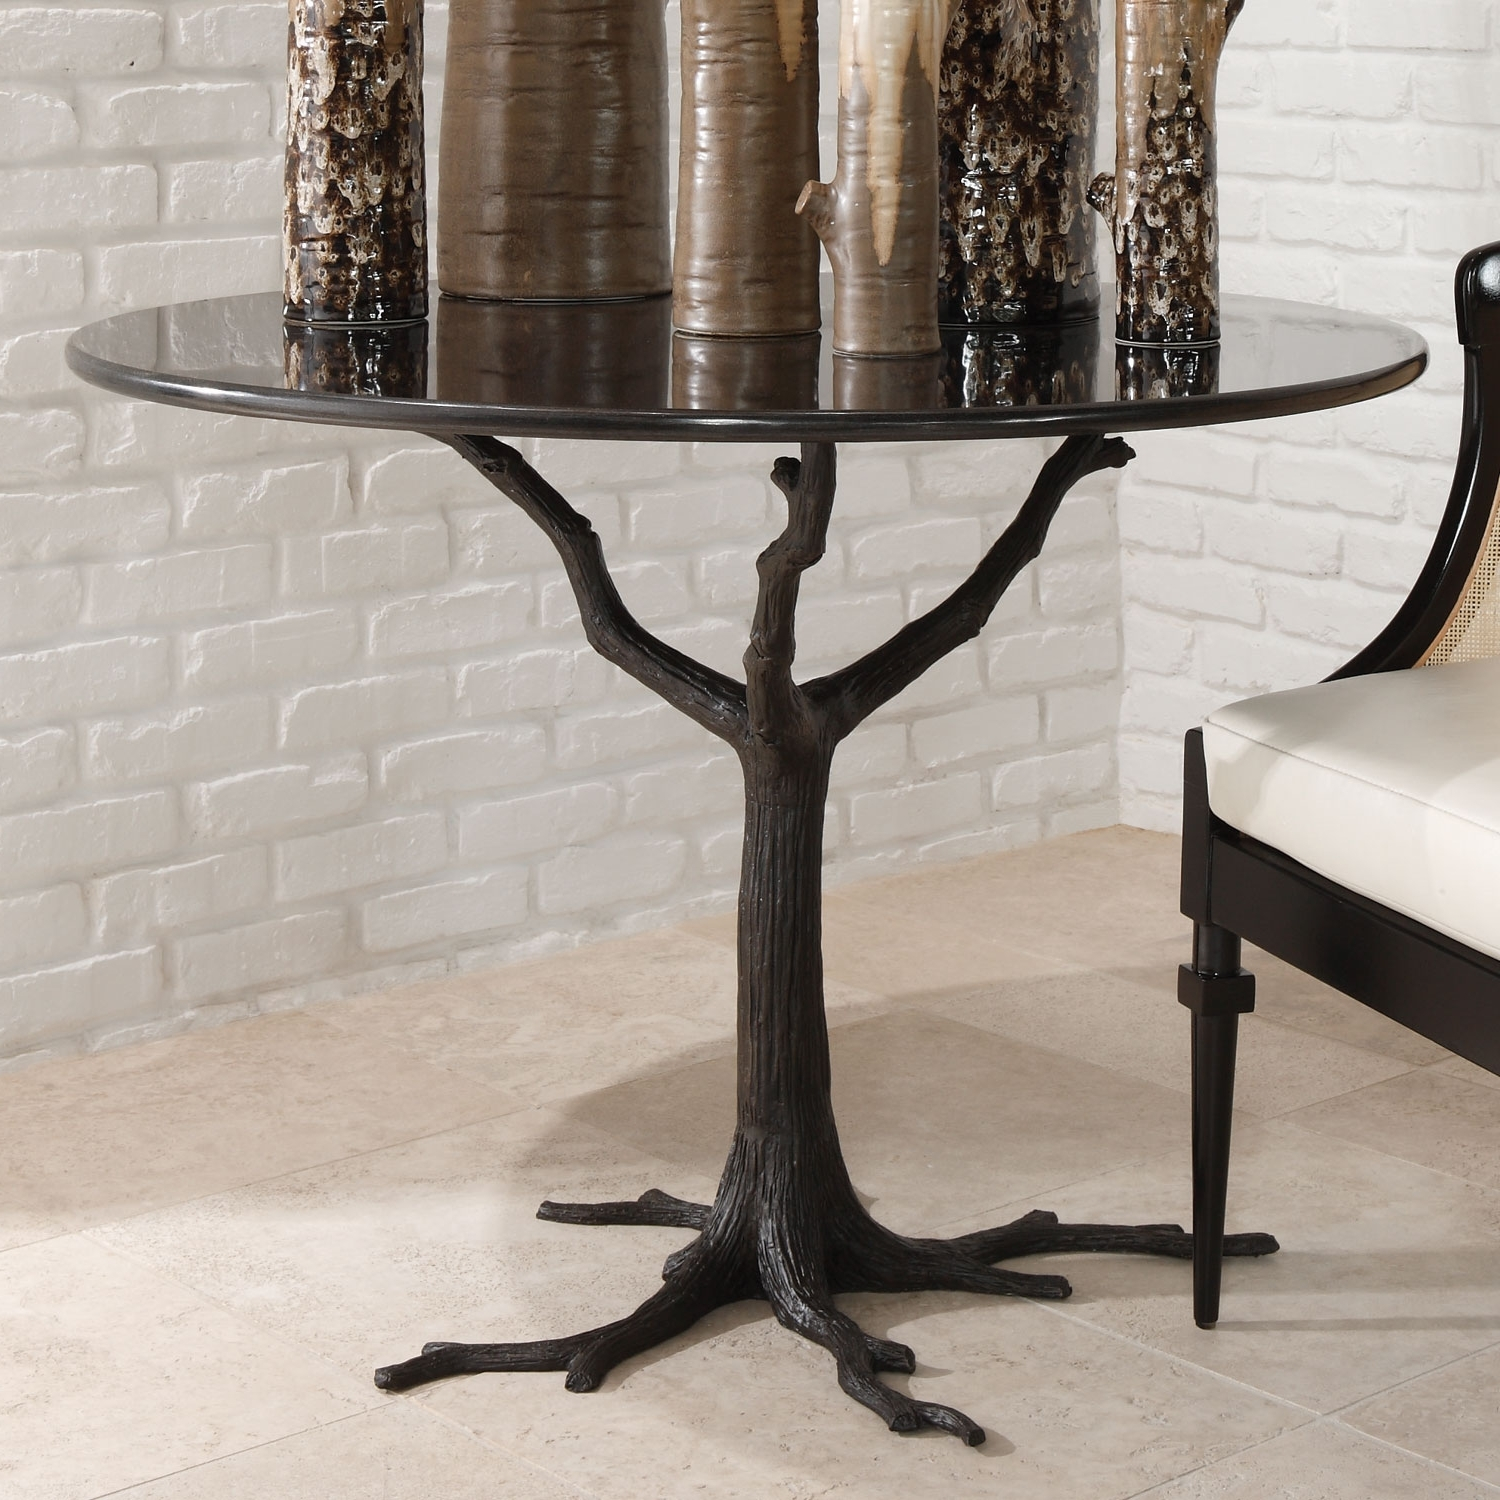 Fashionable Faux Bois Coffee Tables With Regard To Global Views Faux Bois Dining Table (View 18 of 20)